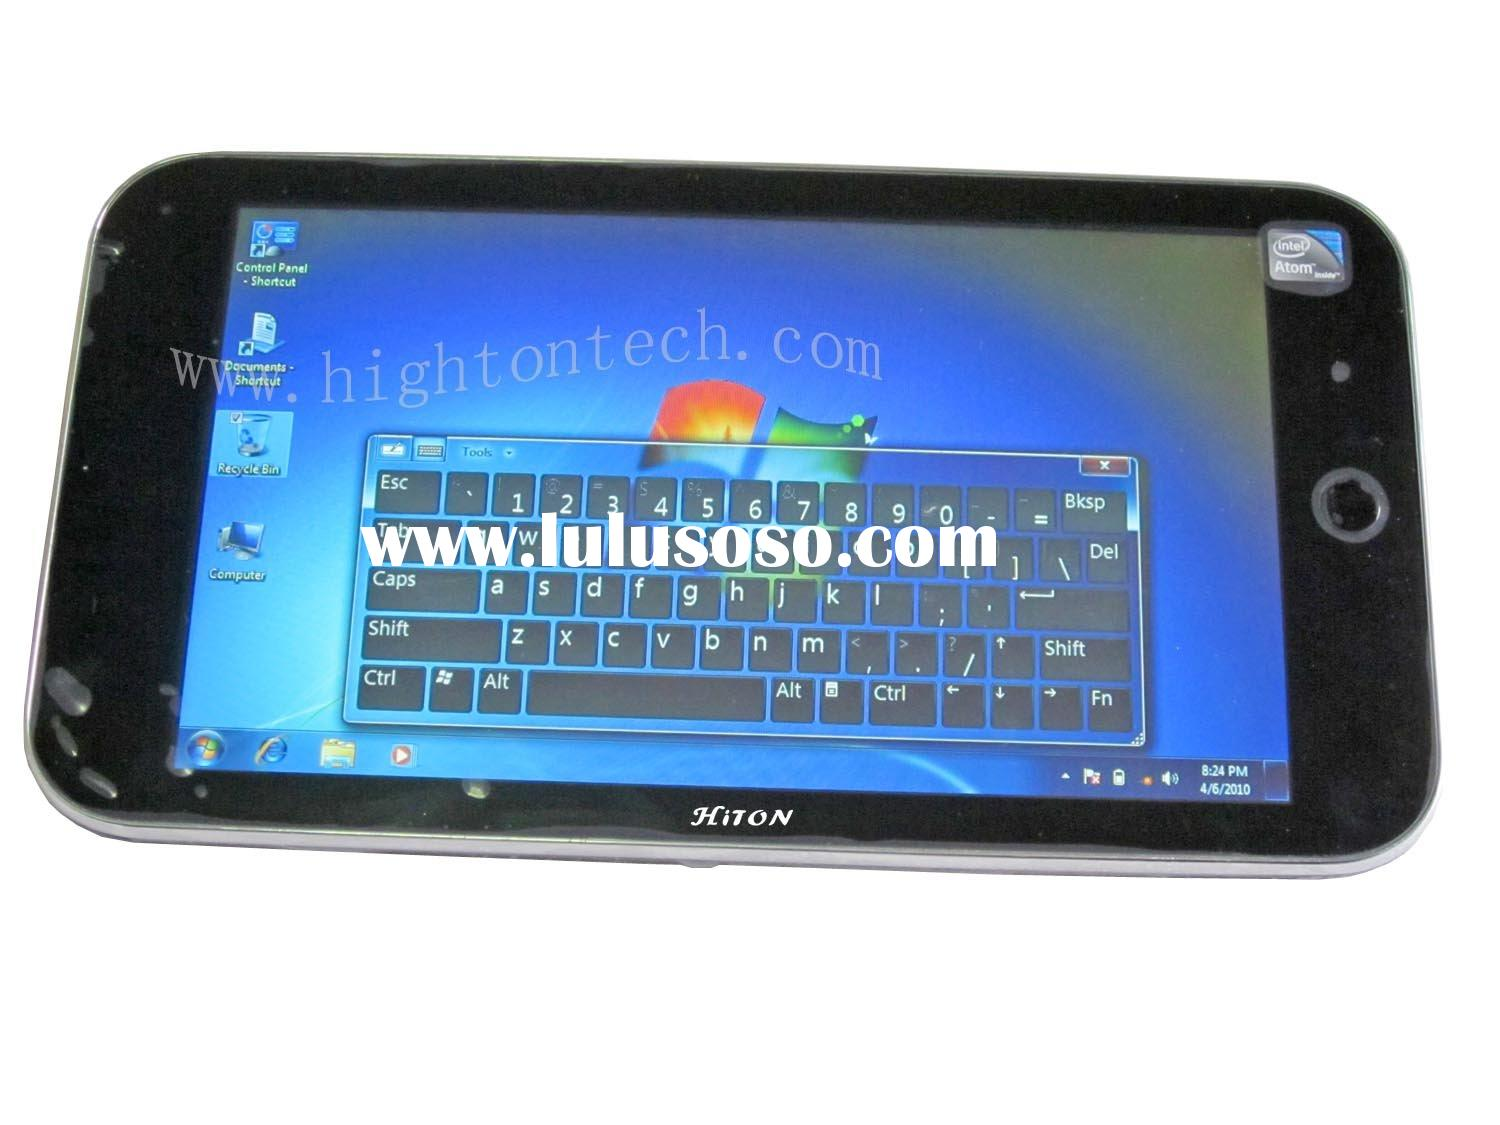 "10"" Capacitive Touch Screen UMPCs MID laptop Notebook Computer with Capacitive Touch Screen"